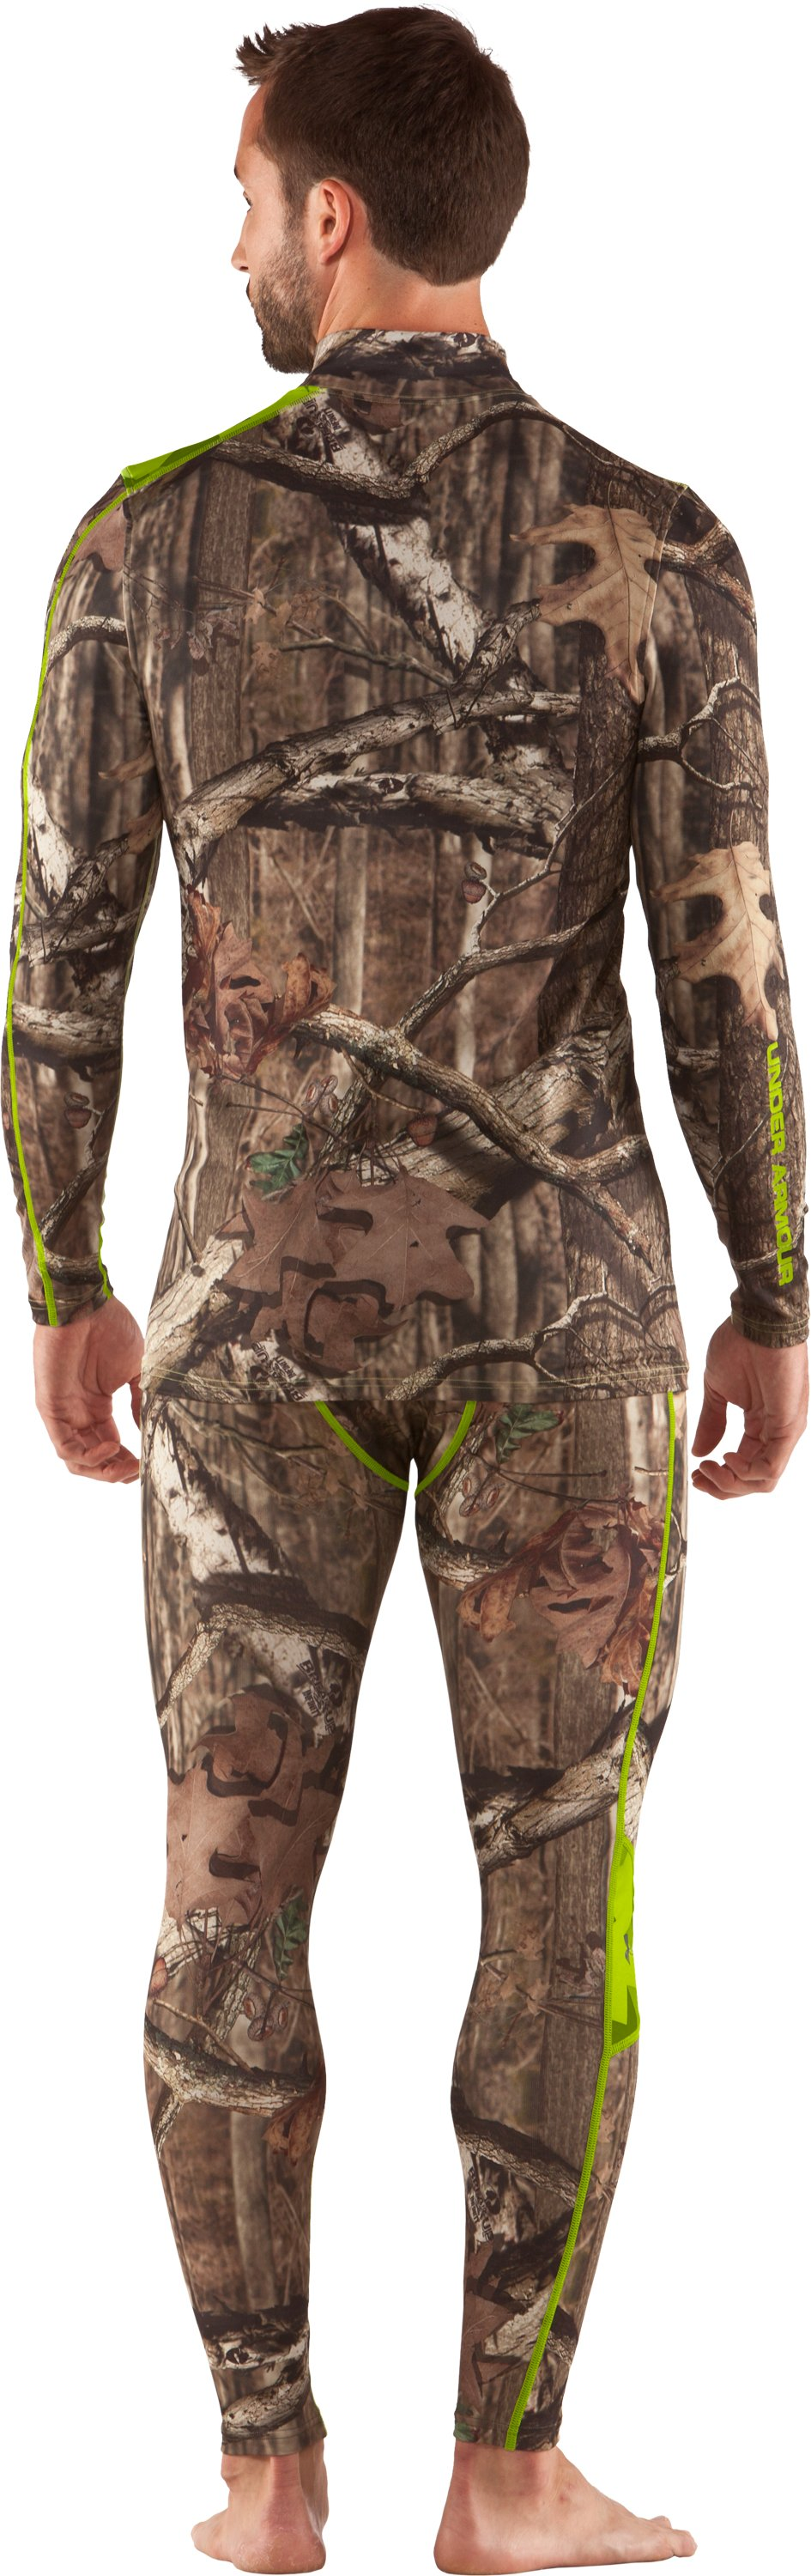 Men's ColdGear® Evo Scent Control Leggings, Mossy Oak Break-Up Infinity, Back